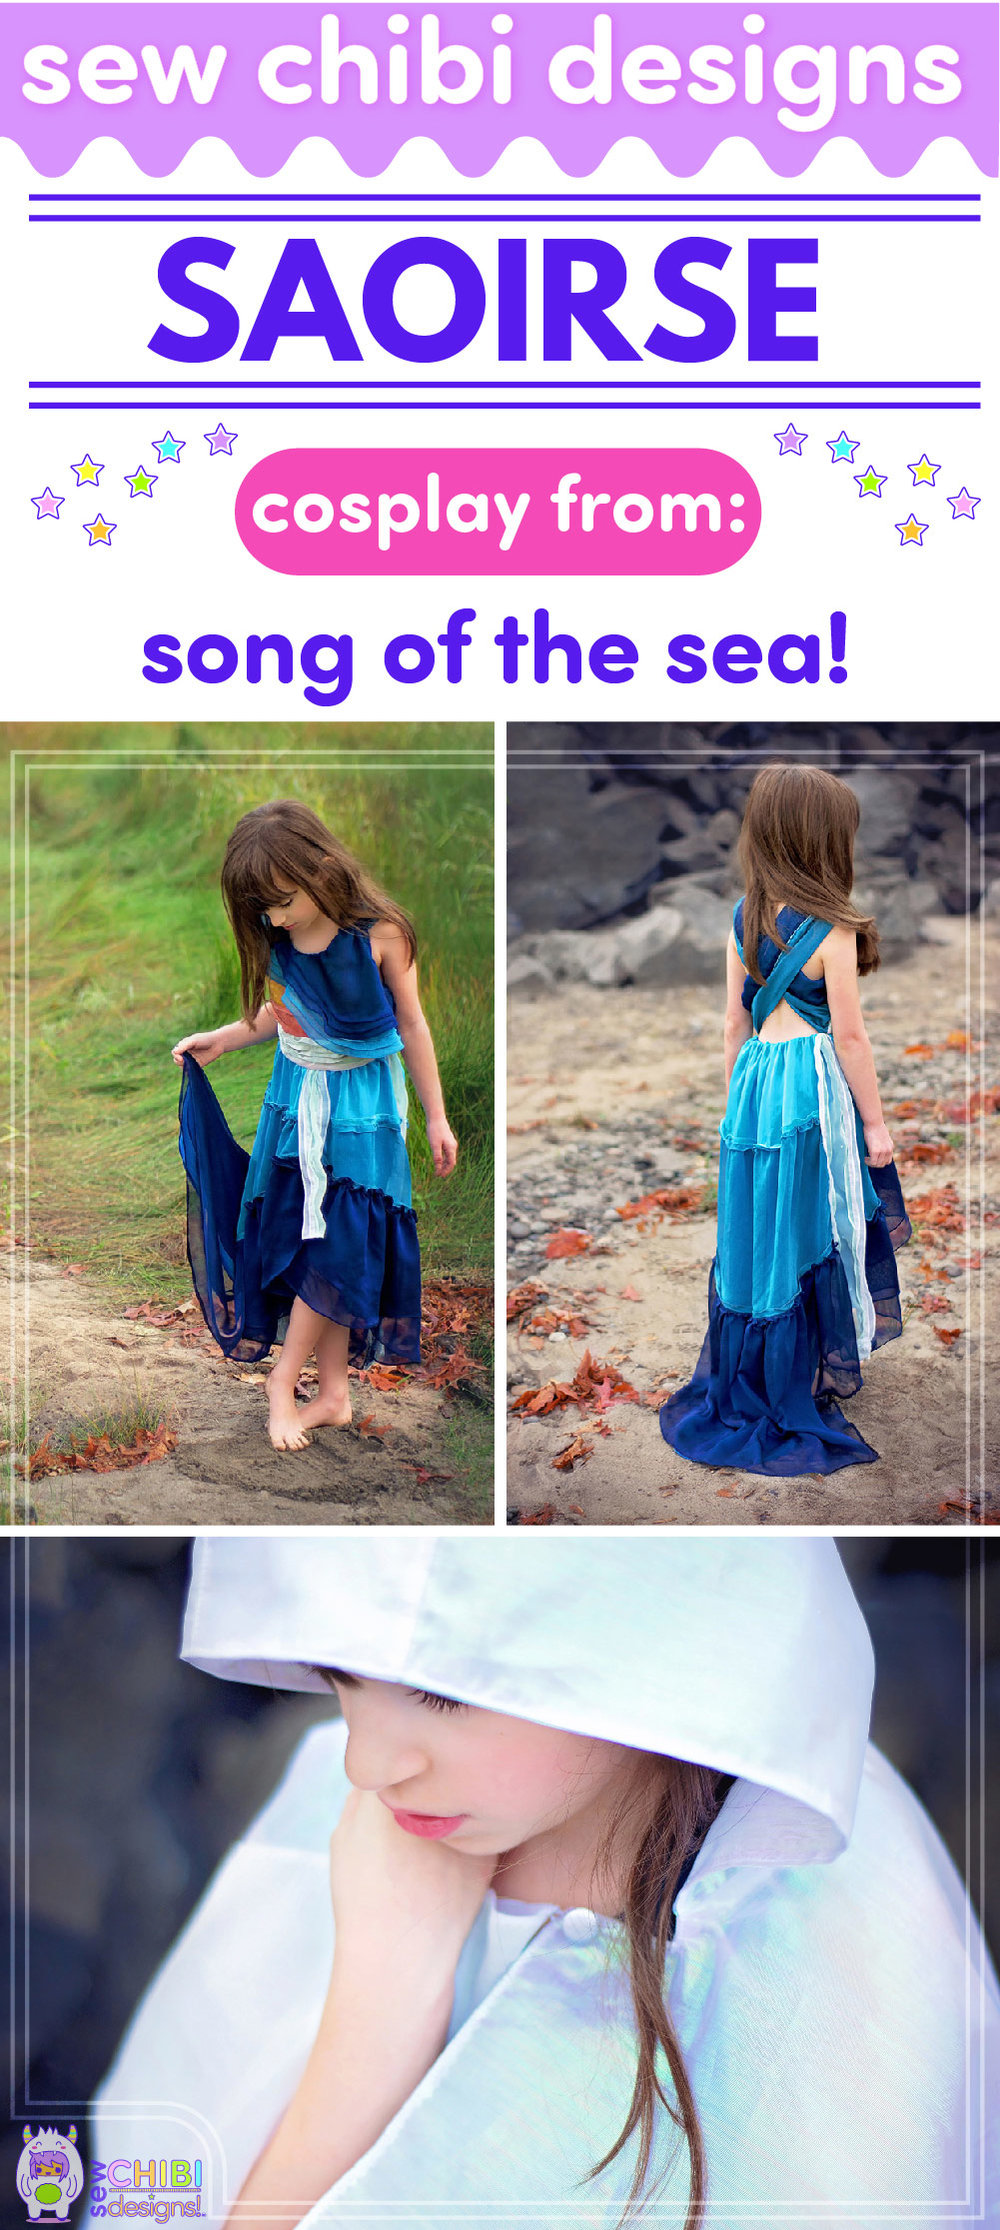 Saoirse chibi cosplay from Song of the Sea sewn by Sew Chibi Designs for Sew Geeky